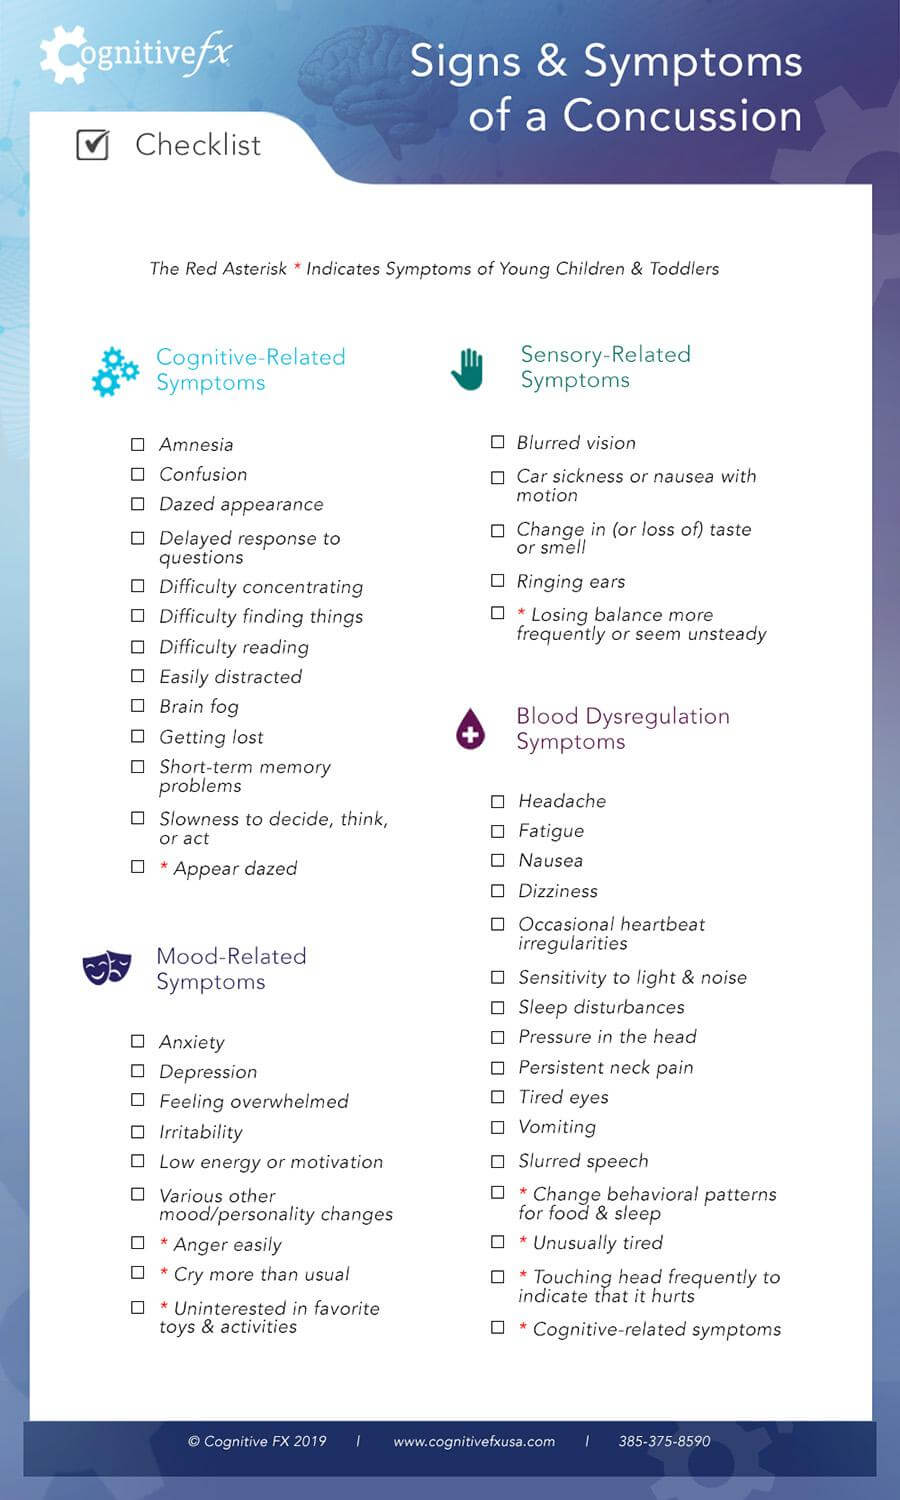 Signs and symptoms of a concussion checklist